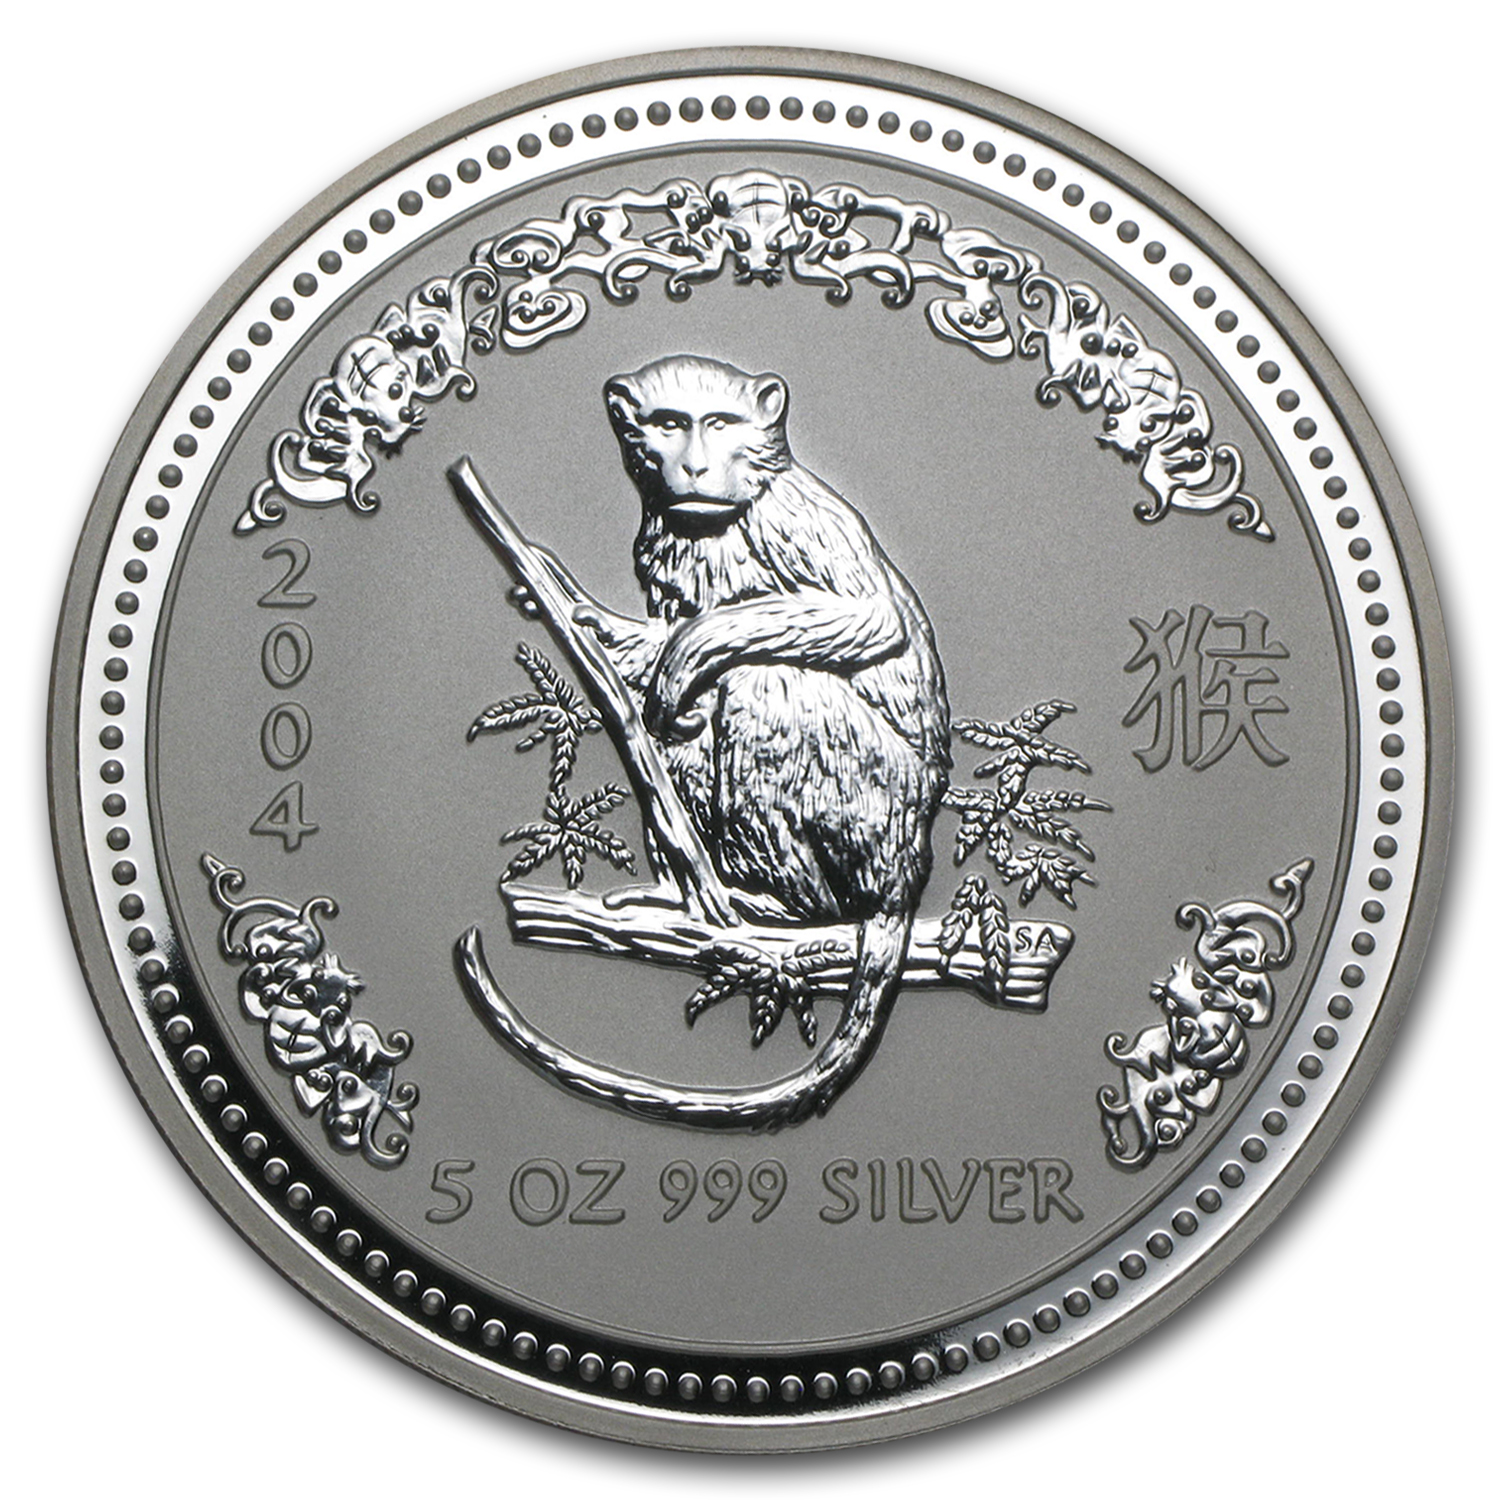 2004 Australia 5 oz Silver Year of the Monkey BU